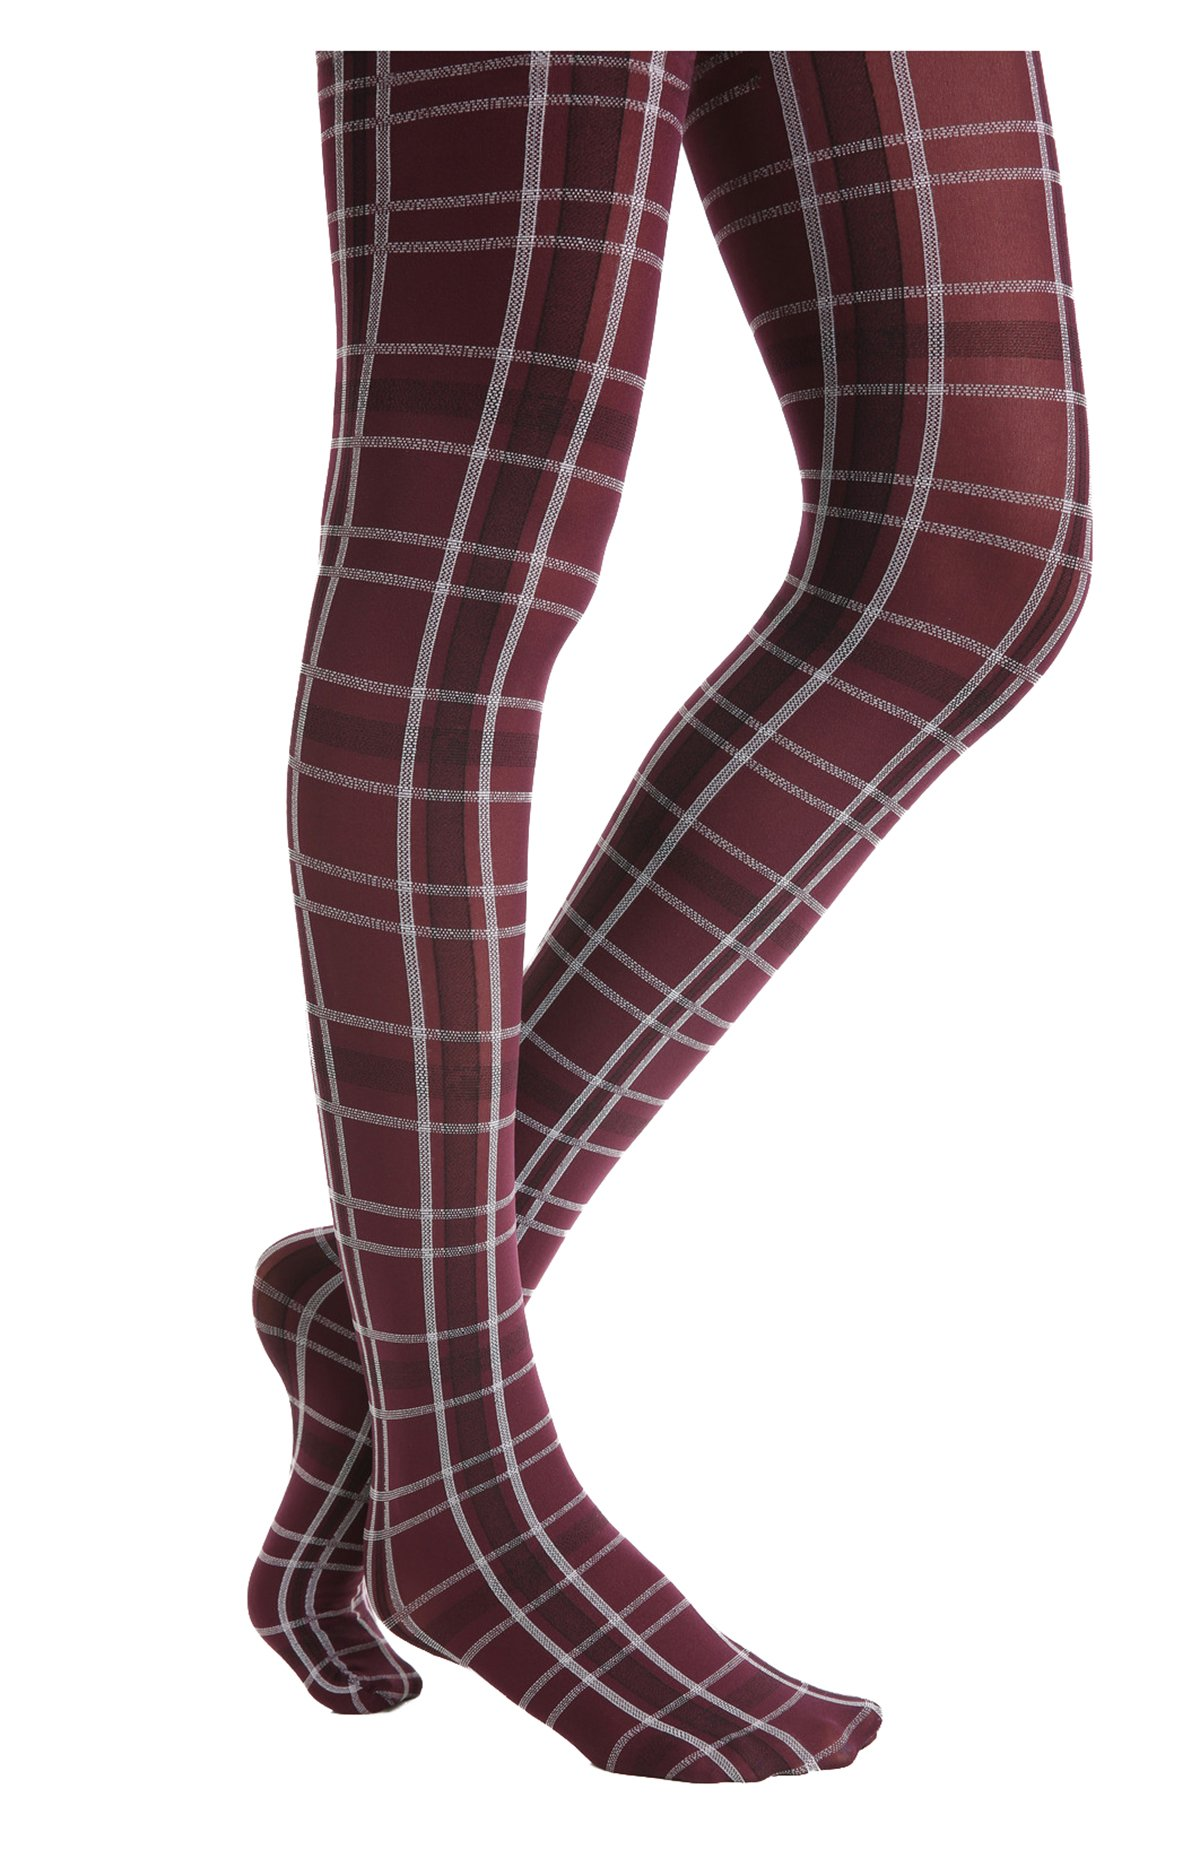 Hue Women's Opaque Tights Plaid, Burgundy Red (Medium)